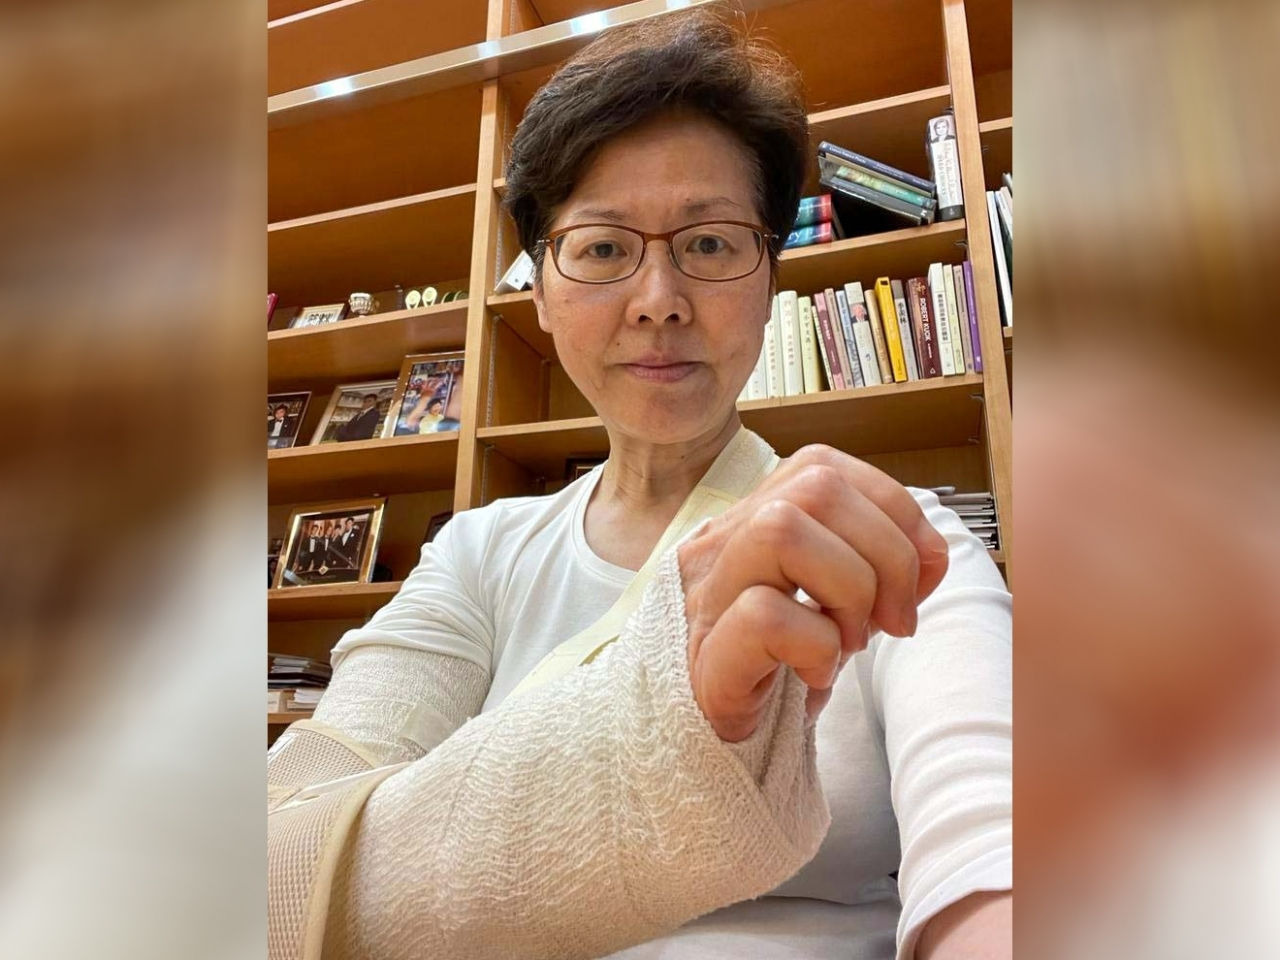 Fractured elbow will take weeks to heal: Carrie Lam